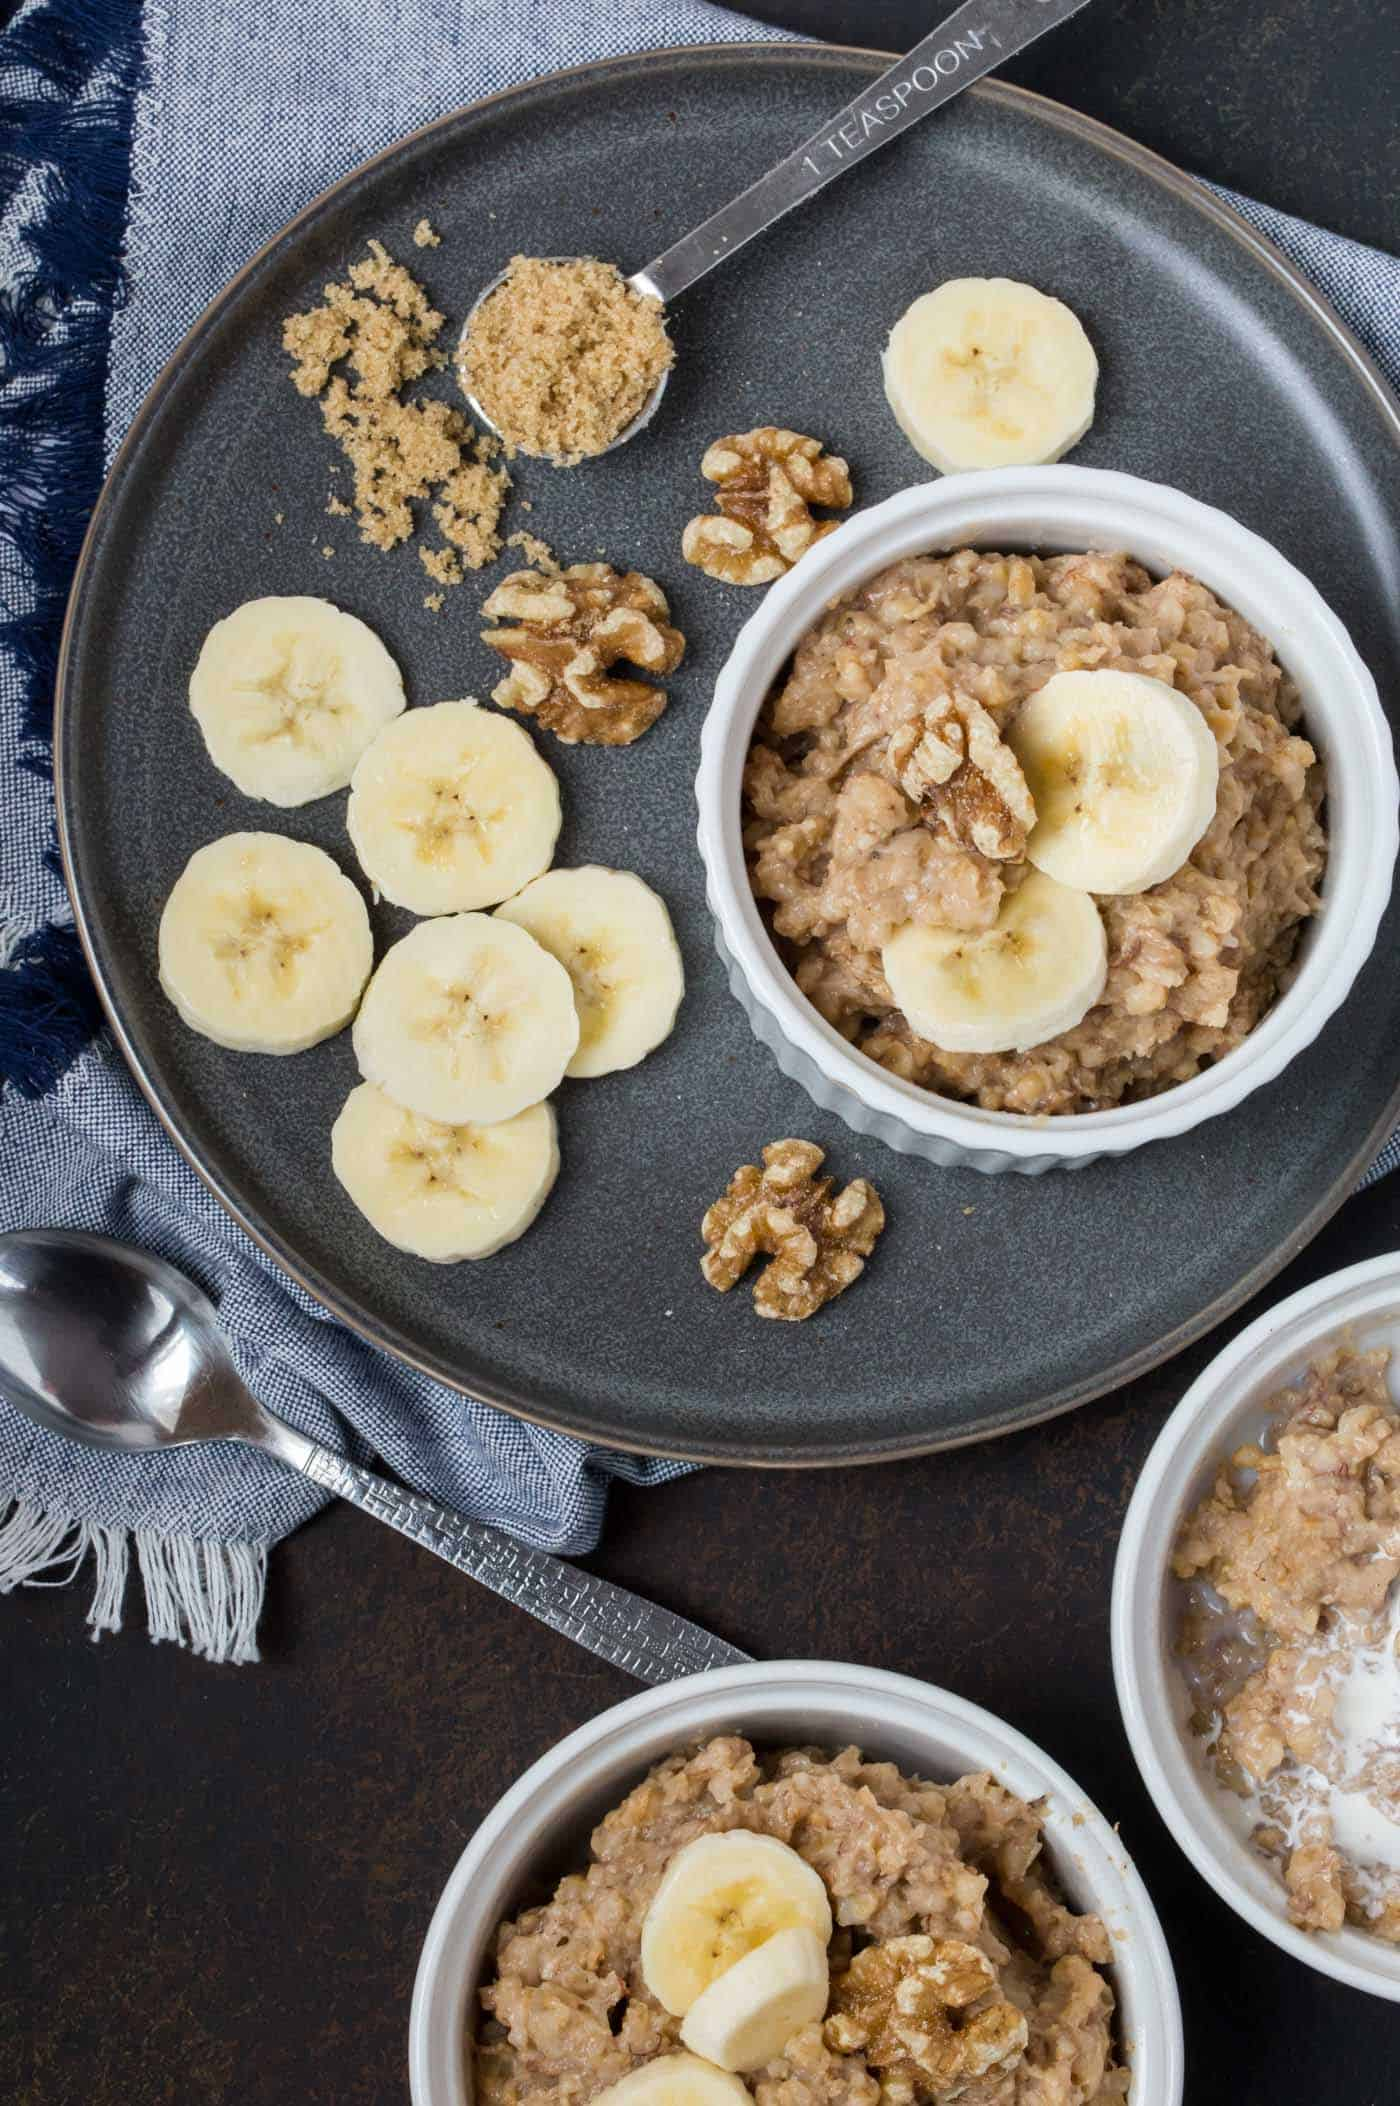 ramekins with oatmeal sitting on a table, with bananas, browns sugar and pecans.